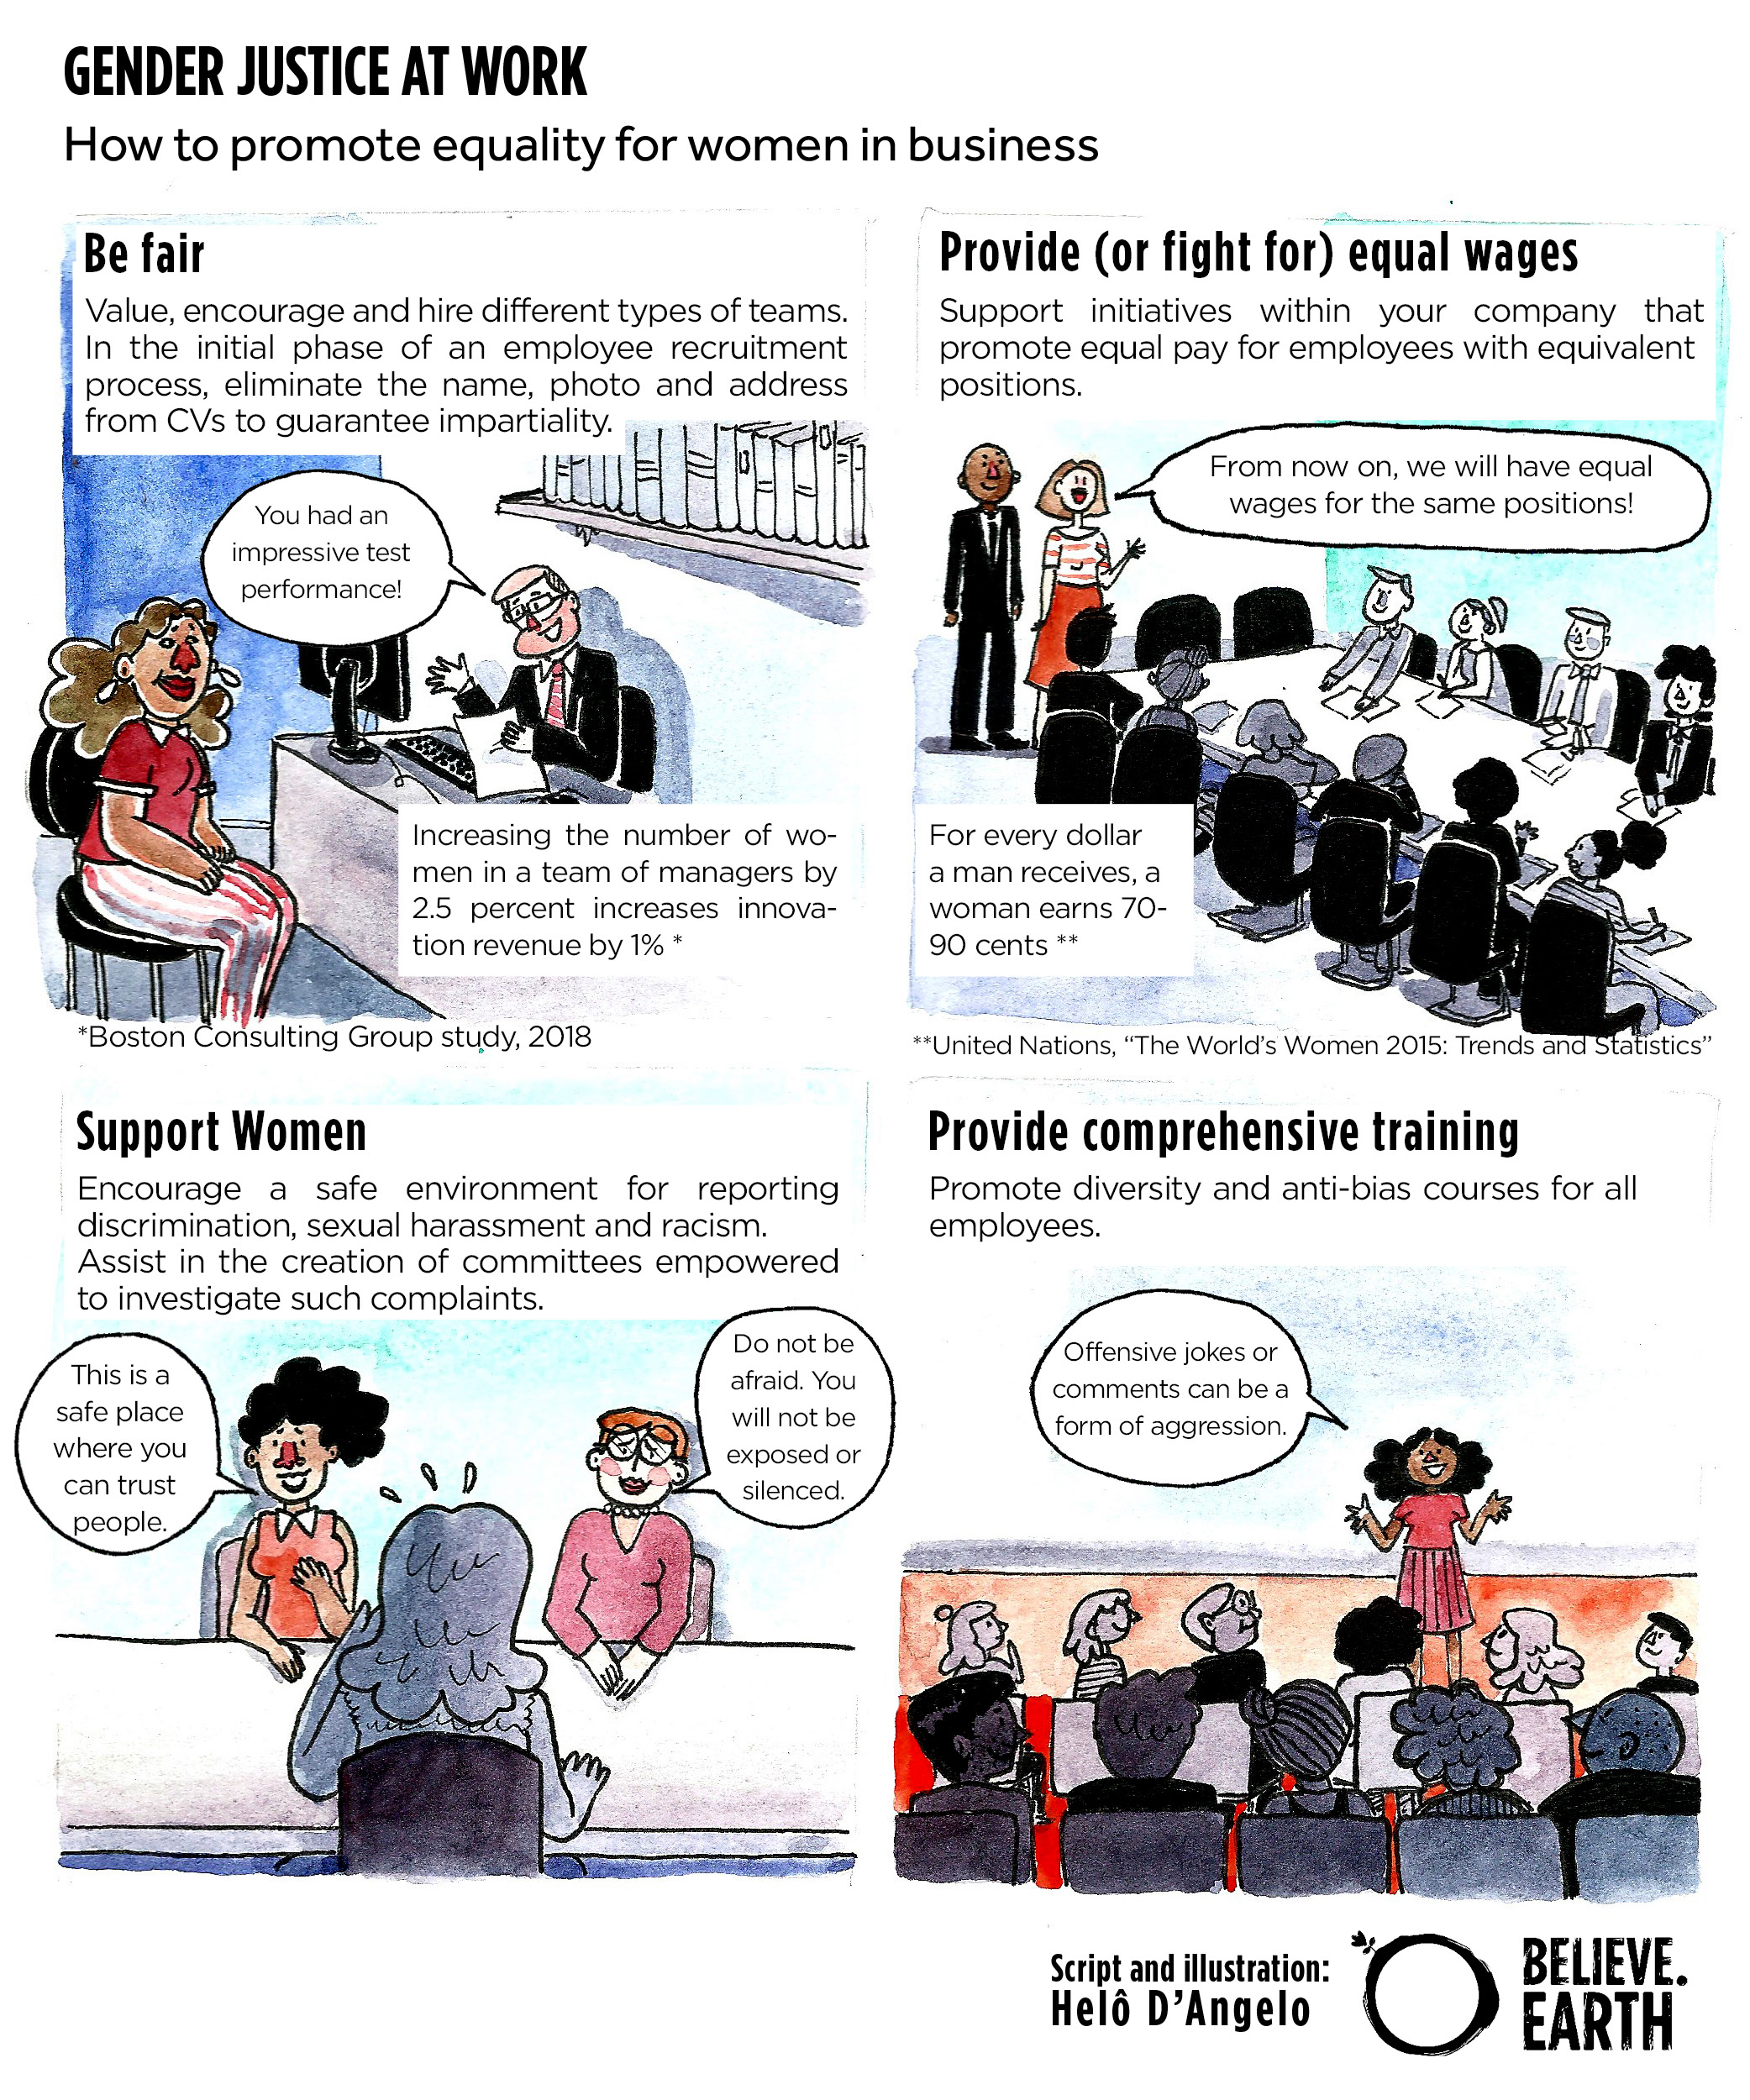 "GENDER JUSTICE AT WORK How to promote equality for women in business Be fair Value, stimulate and hire different types of teams. In the initial phase of an employee recruitment process, eliminate the name, photo and address from CVs to guarantee impartiality Promote women Increasing the number of women in a team of managers by 2.5 percent increases innovation revenue by 1% * - You had an impressive test performance! *Boston Consulting Group study, 2018 Provide (or fight for) equal wages Support initiatives within your company that promote equal pay for employees with equivalent positions For every dollar a man receives, a woman earns 70-90 cents ** - ""From now on, we will have equal wages for the same positions!"" ** United Nations, ""The World's Women 2015: Trends and Statistics"" Support Women Encourage a safe environment for reporting discrimination, sexual harassment and racism. Assist in the creation of committees empowered to investigate such complaints - This is a safe place where you belong and can trust people. - Do not be afraid to speak up. You will not be exposed or silenced. Provide comprehensive training Promote diversity and anti-bias courses for all employees - Offensive jokes or comments can be a form of aggression."